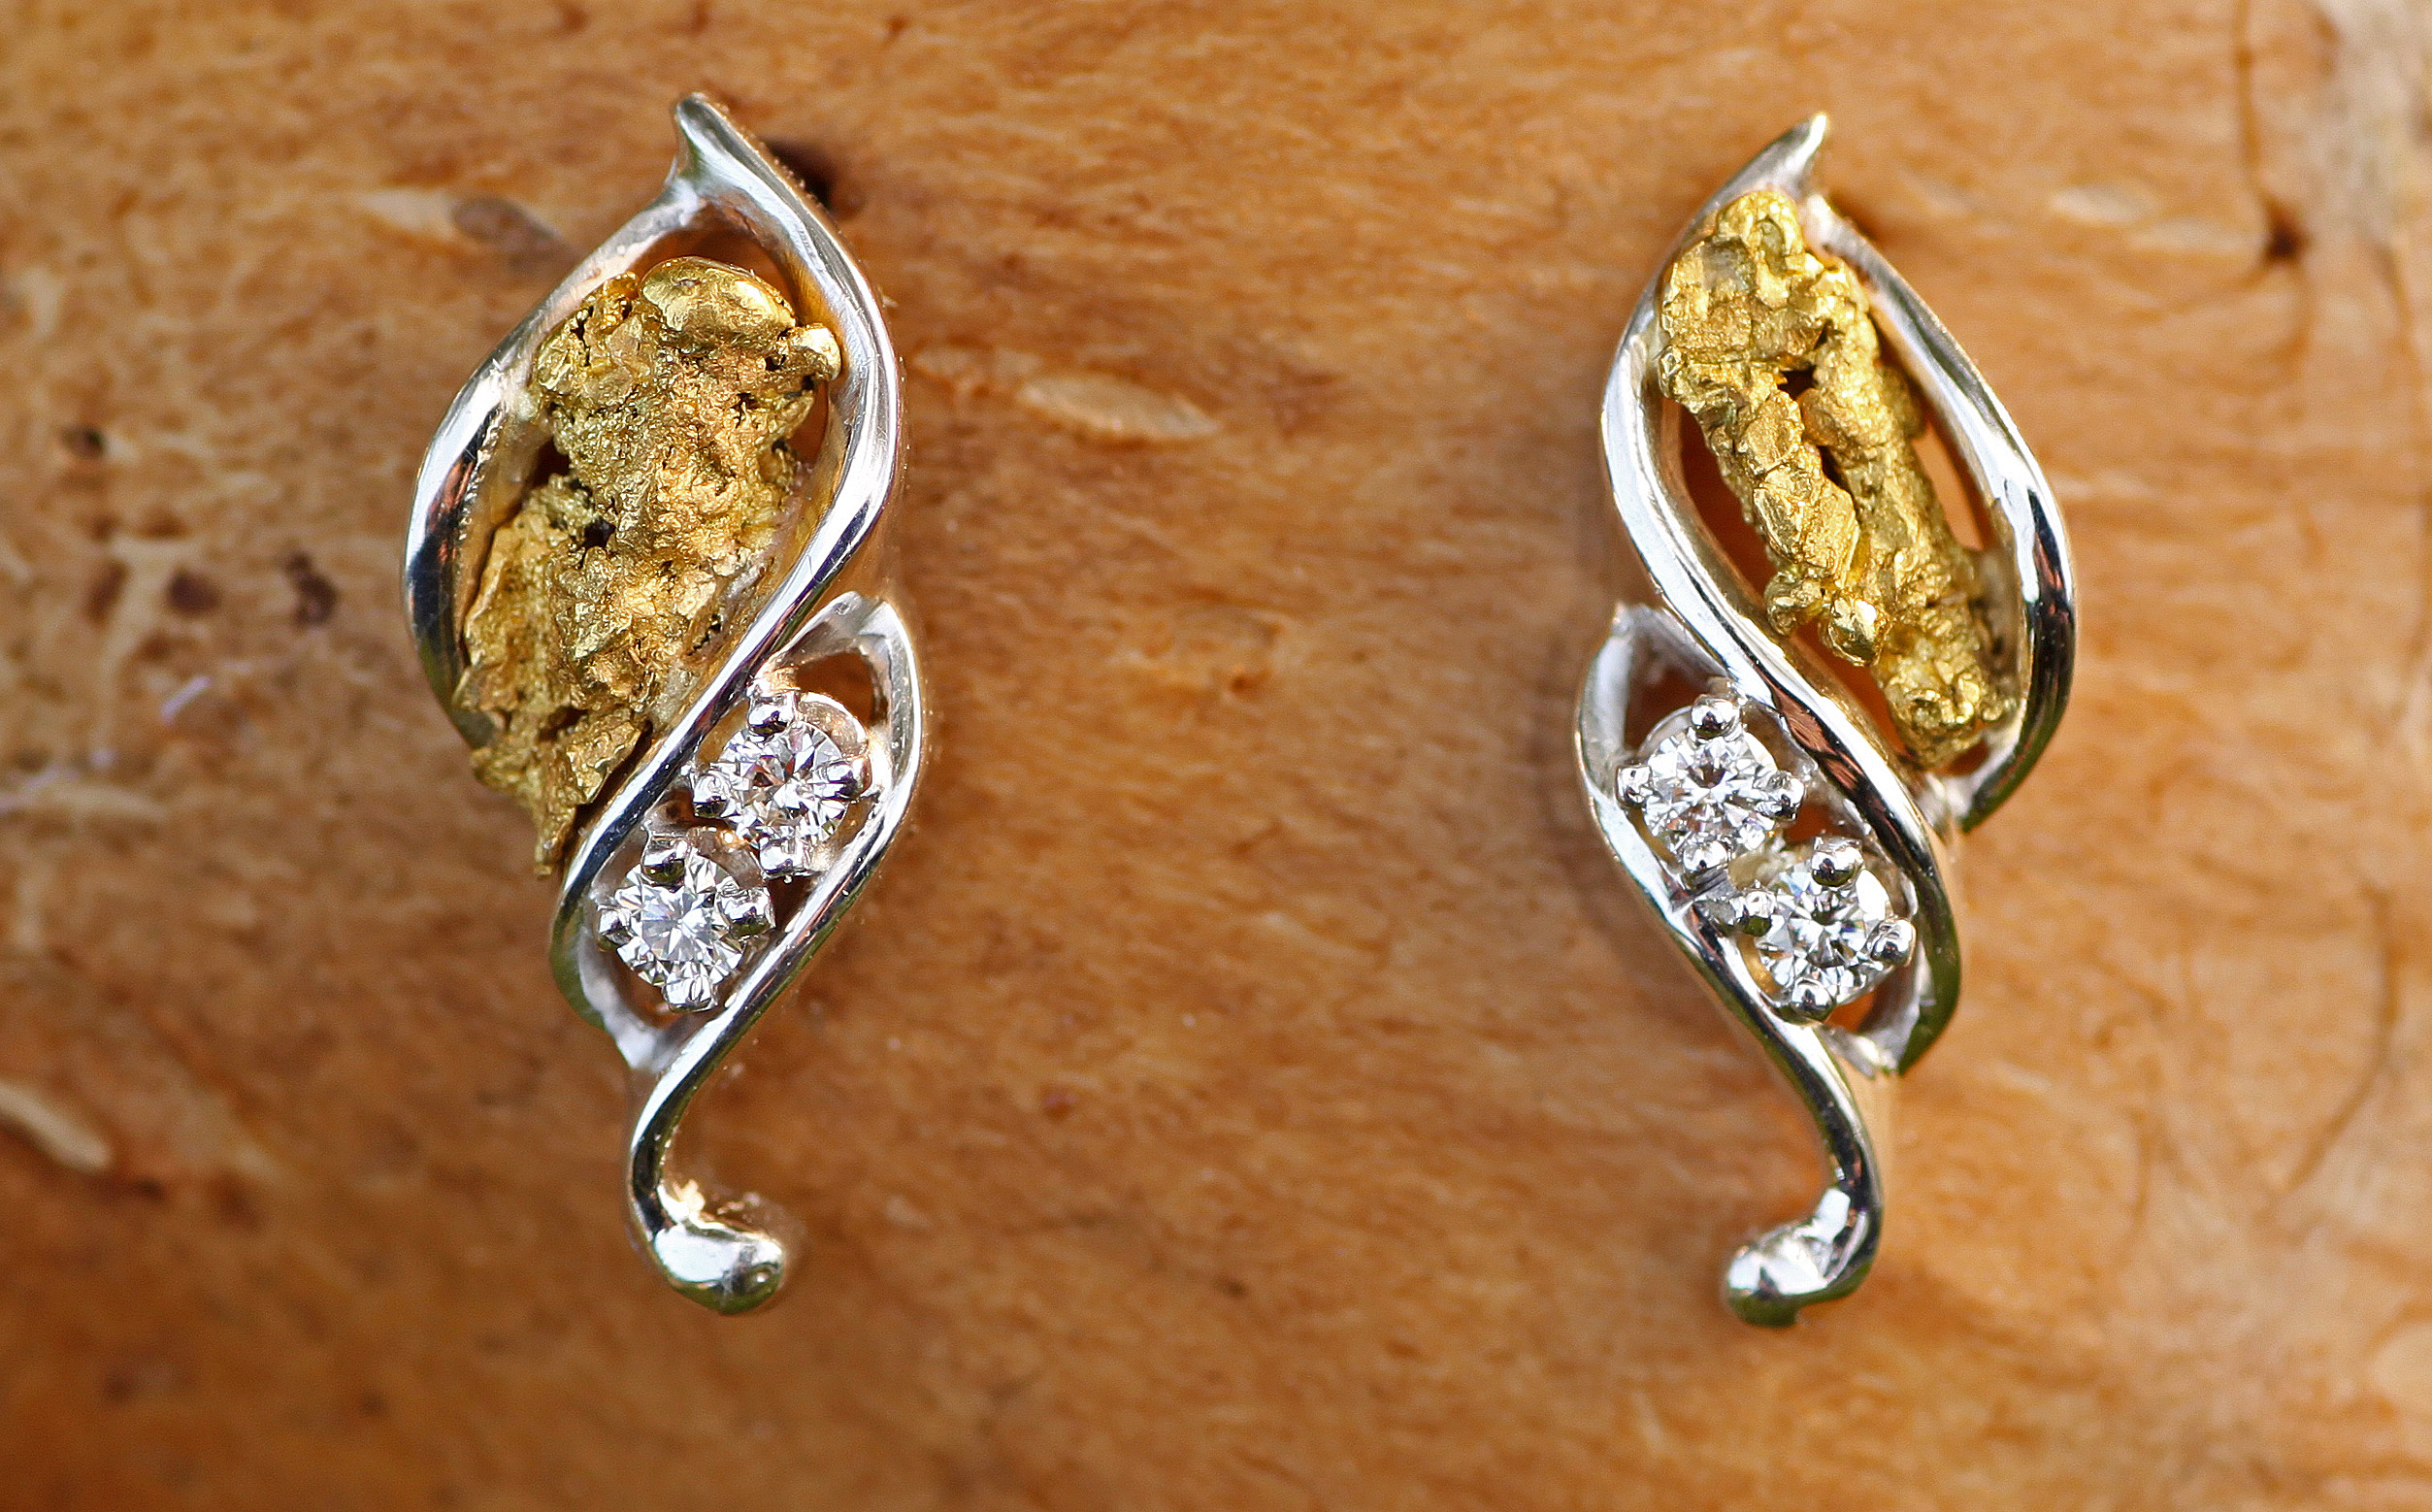 Alaskan Gold Nugget and Diamond Twist Earrings in White Gold